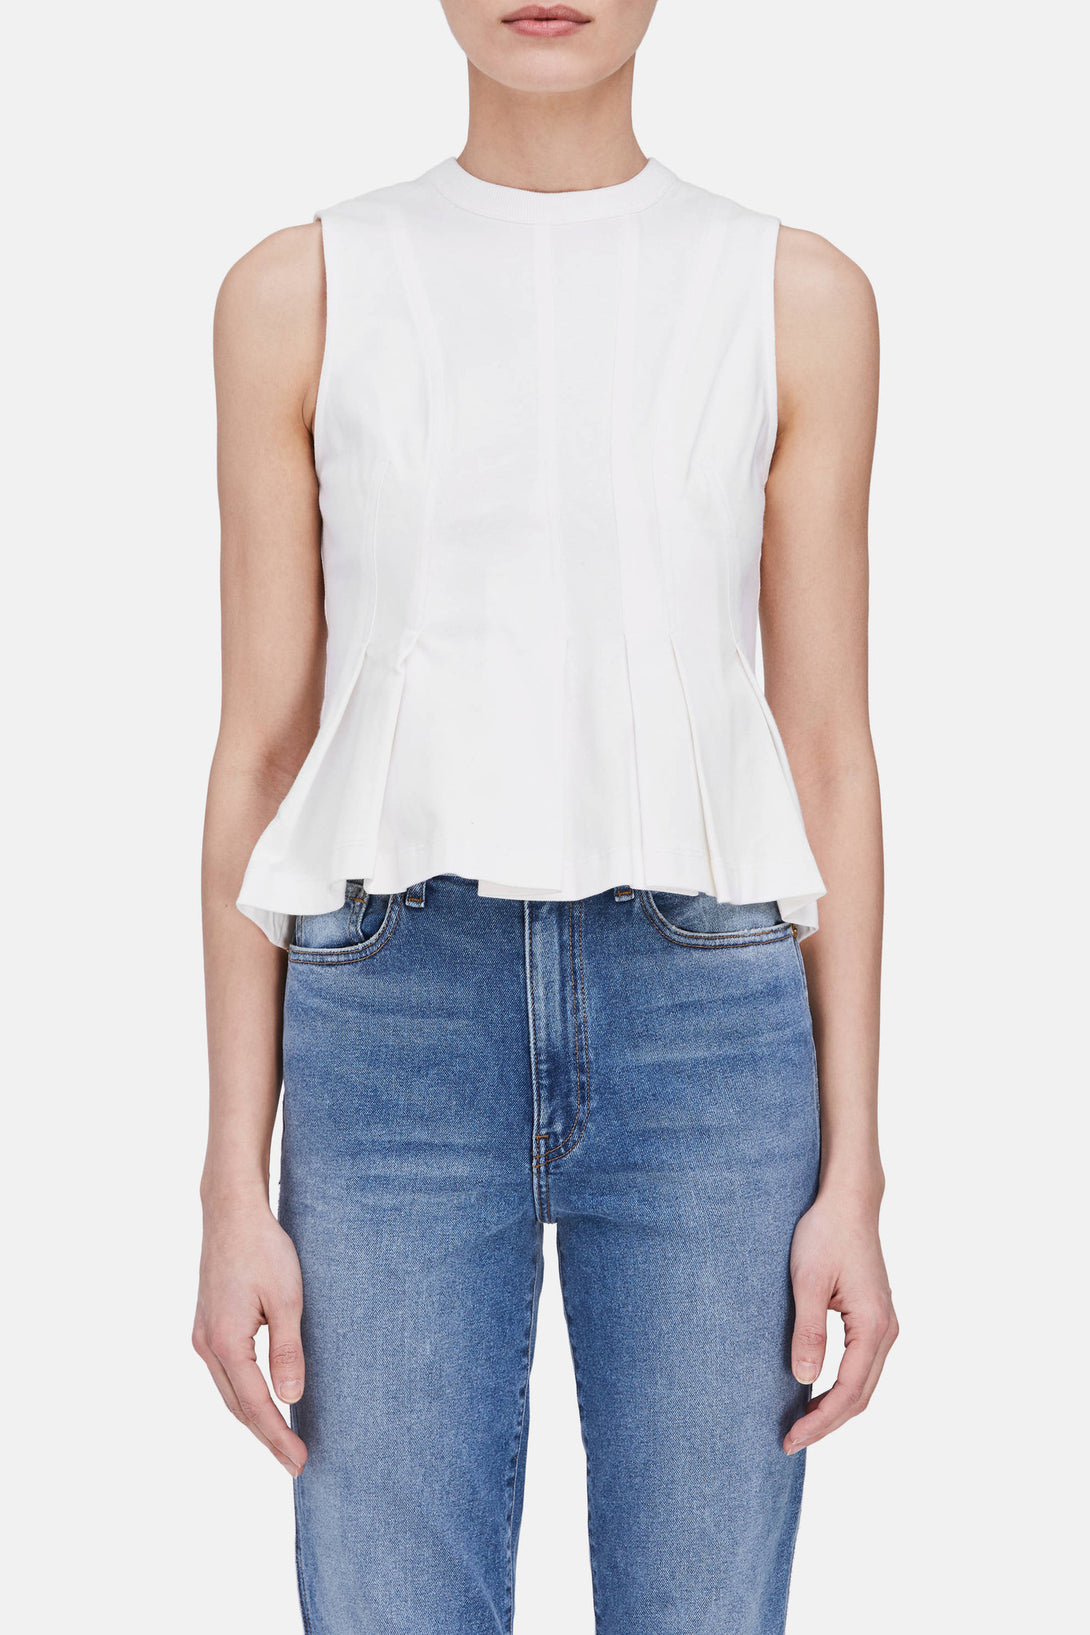 Stiff Cotton Jersey Sleeveless Peplum Top - White